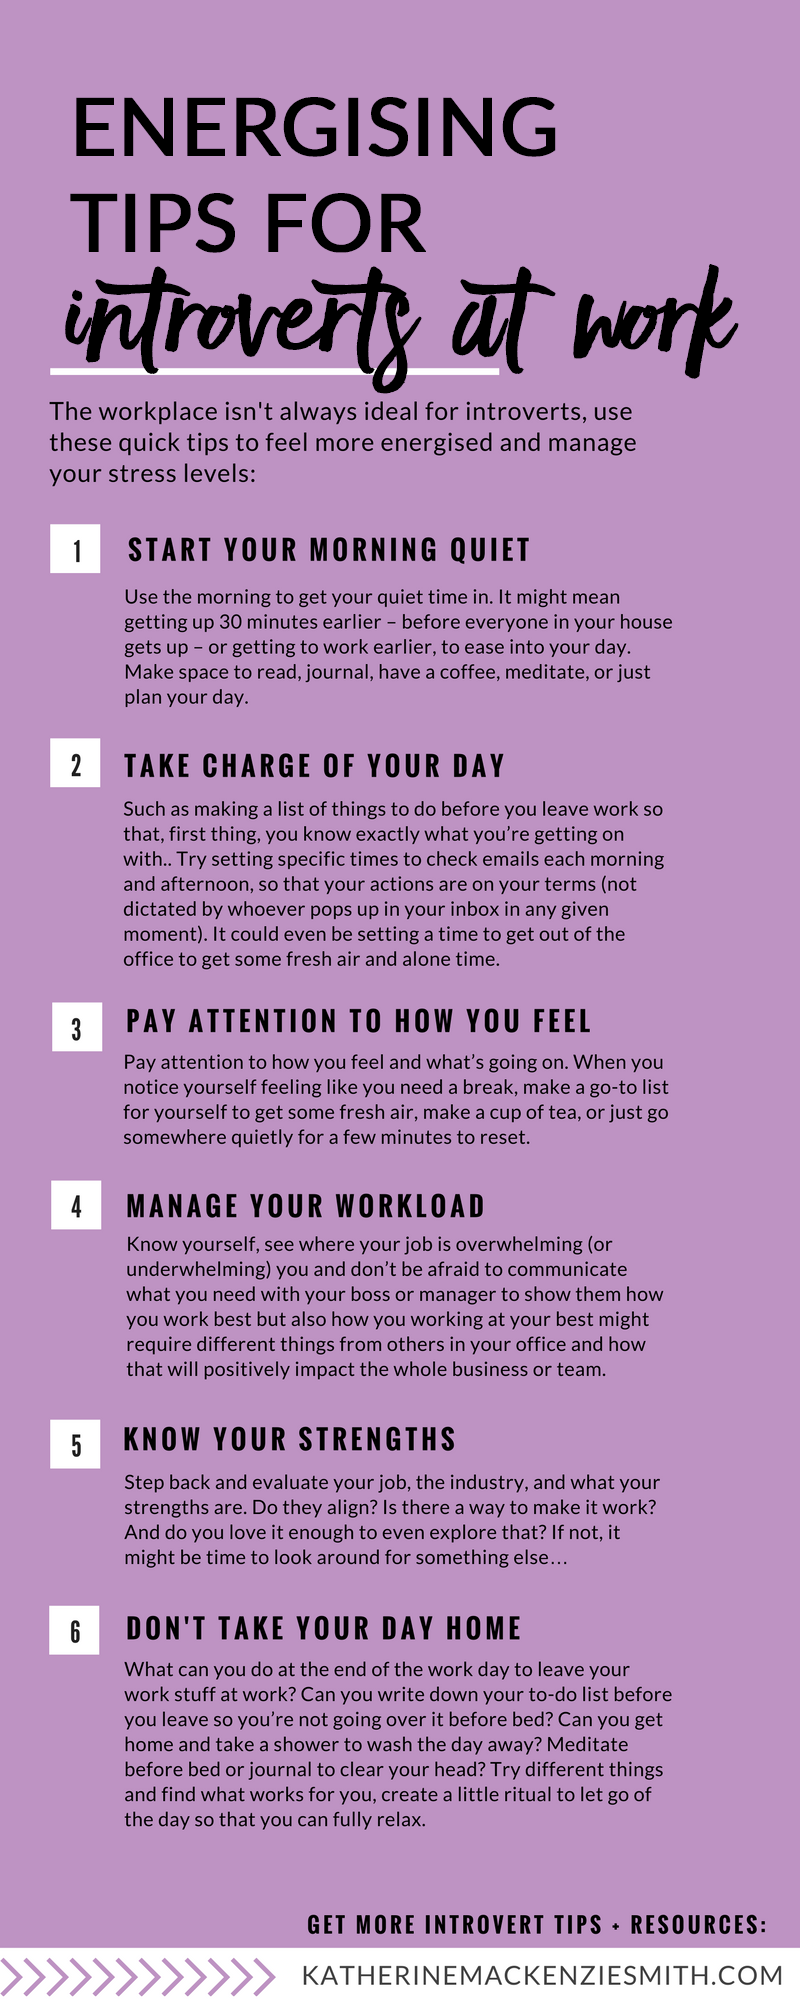 The workplace isn't always ideal for introverts, use these quick tips to feel more energised and manage your stress levels: